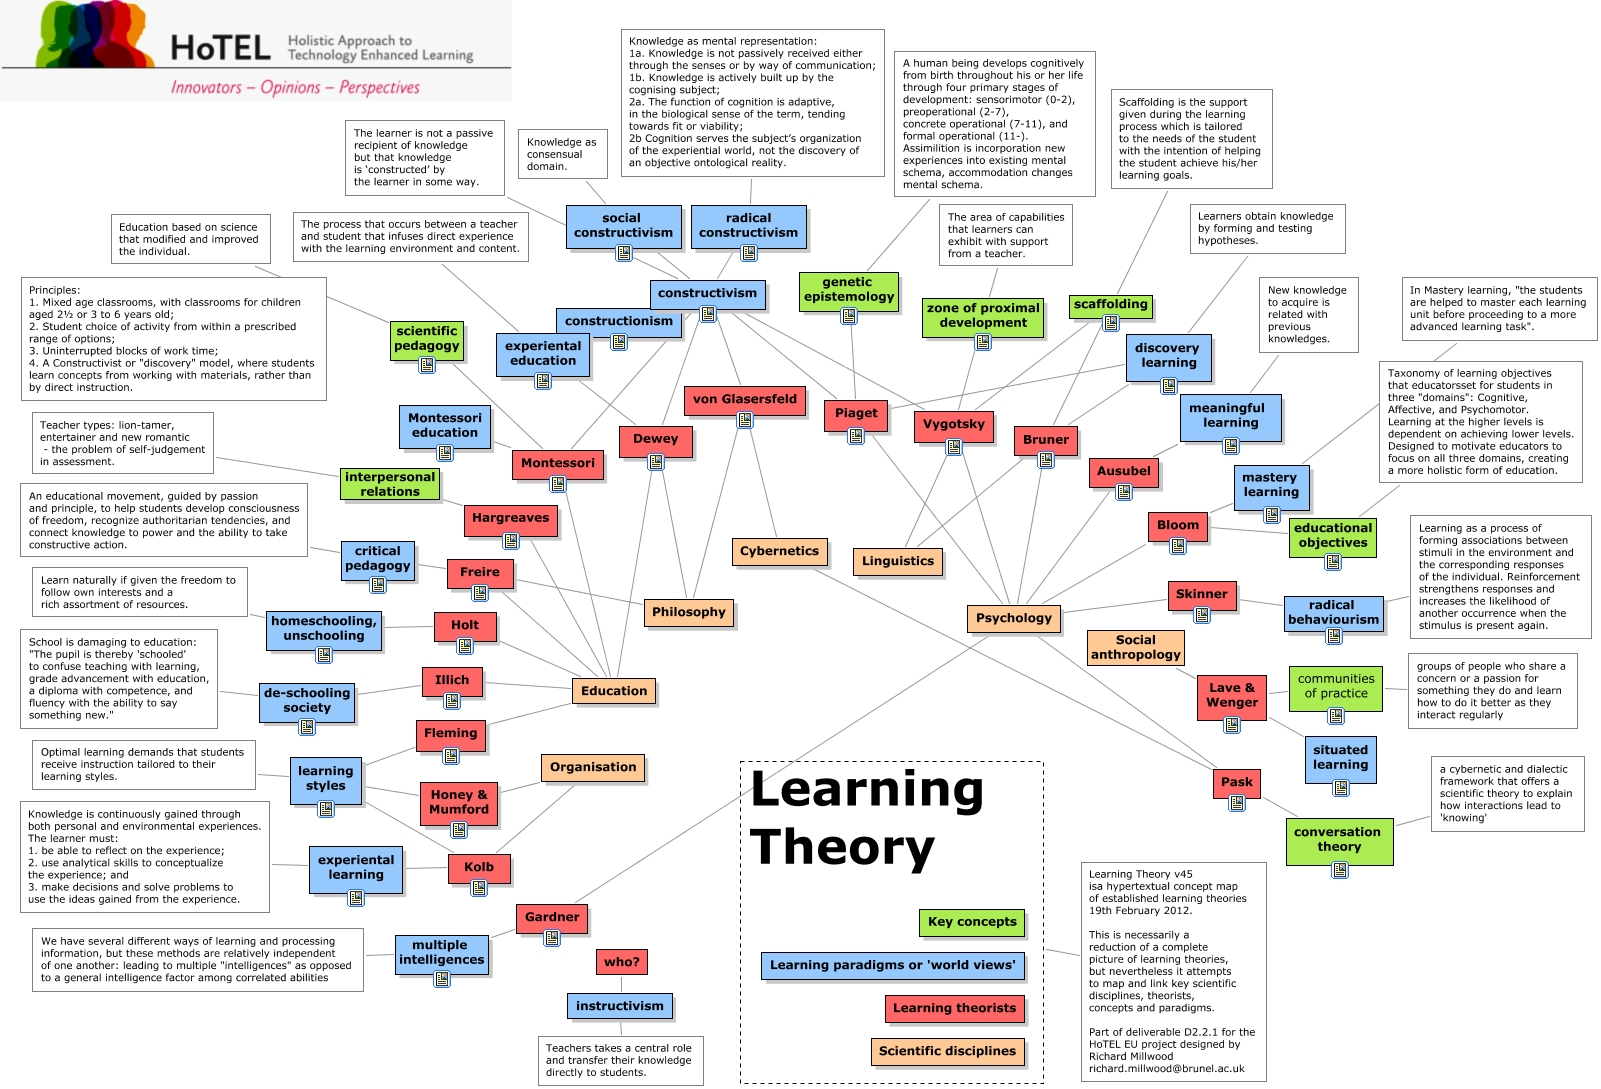 theories of learning and how they Learning theory: learning theory, any of the proposals put forth to explain changes in behaviour produced by practice, as opposed to other factors, eg, physiological development a common.